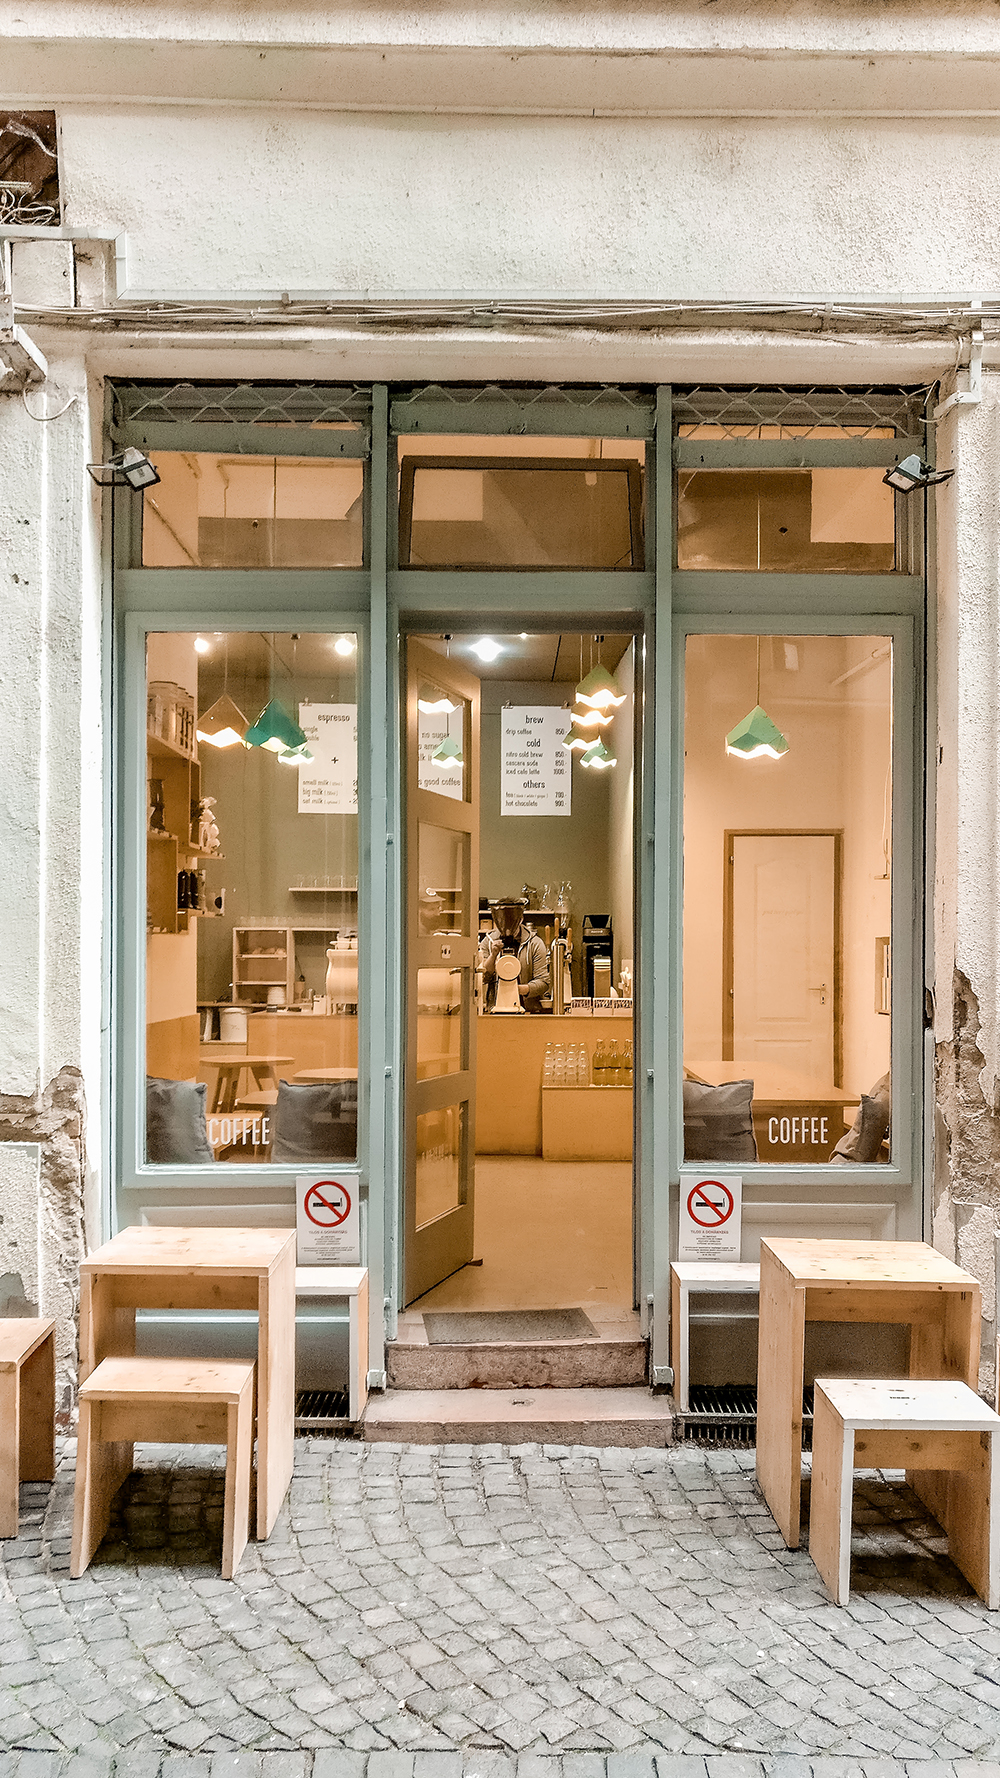 Kontakt Coffee - Where to drink the best specialty coffee in Budapest, Hungary? | Aliz's Wonderland